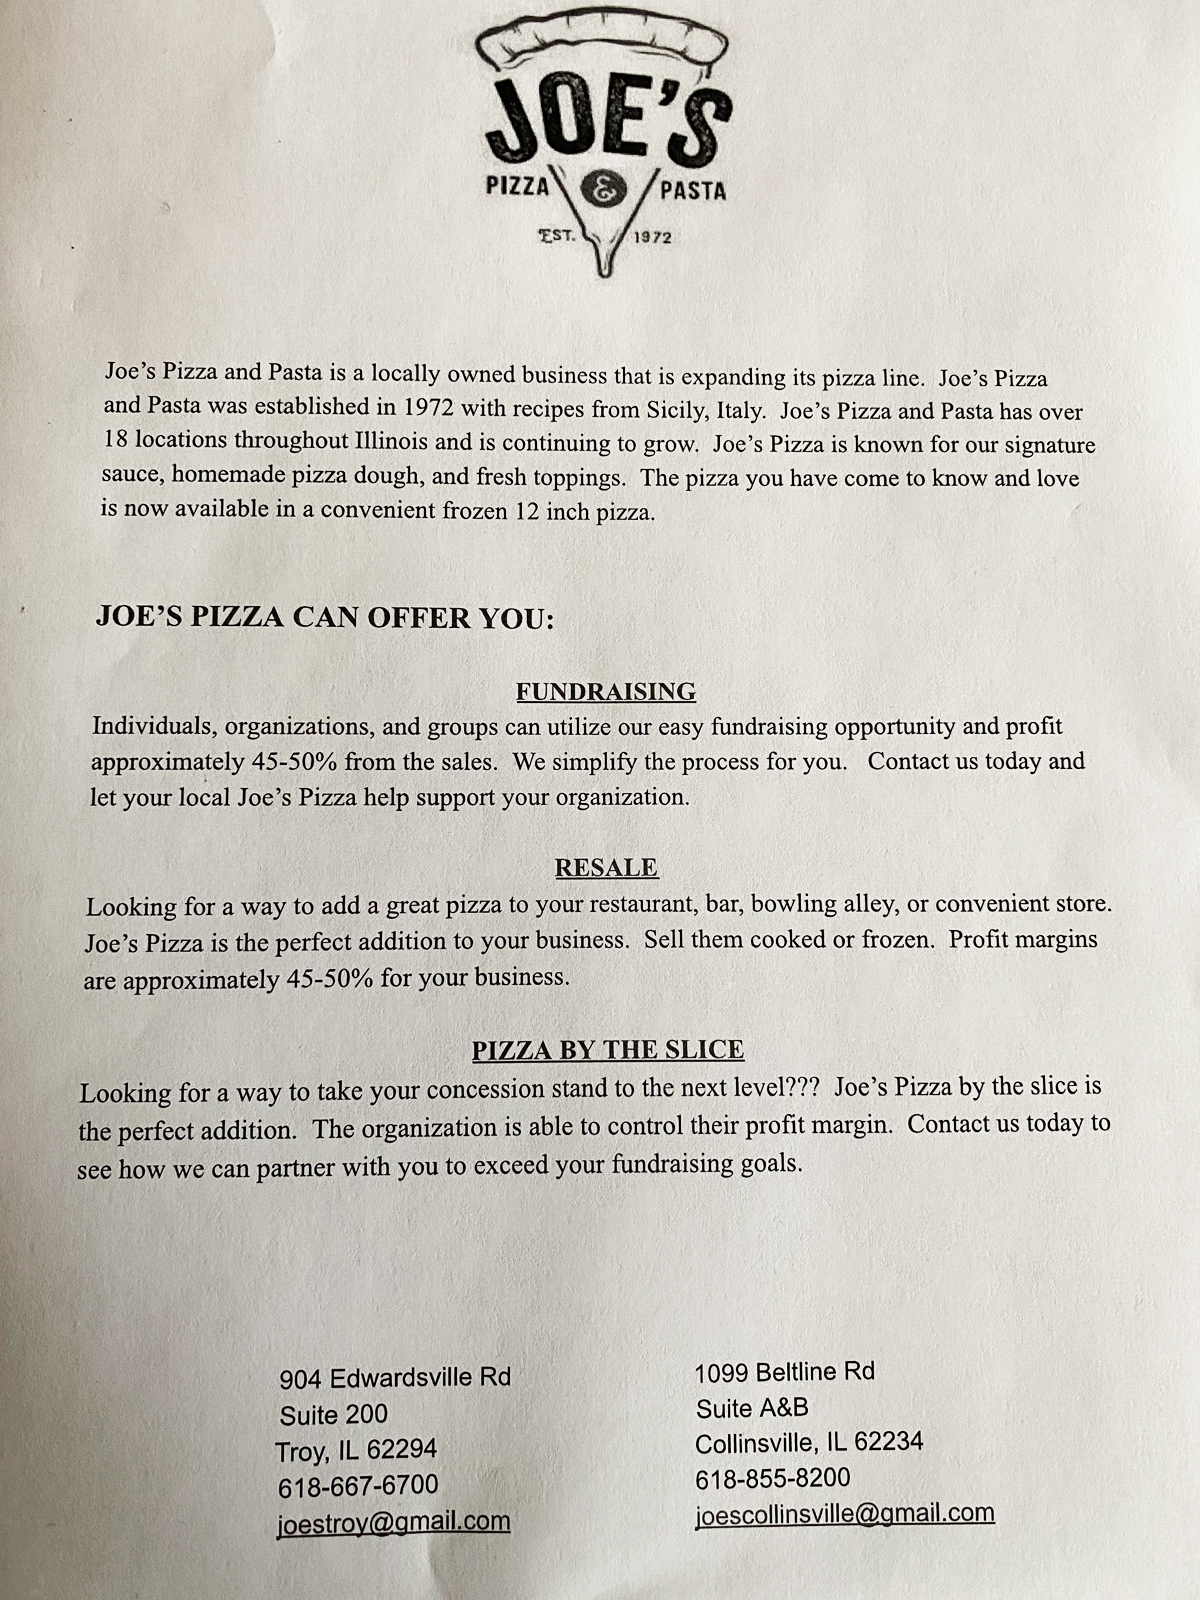 Joe's Pizza Fundraiser Opportunity